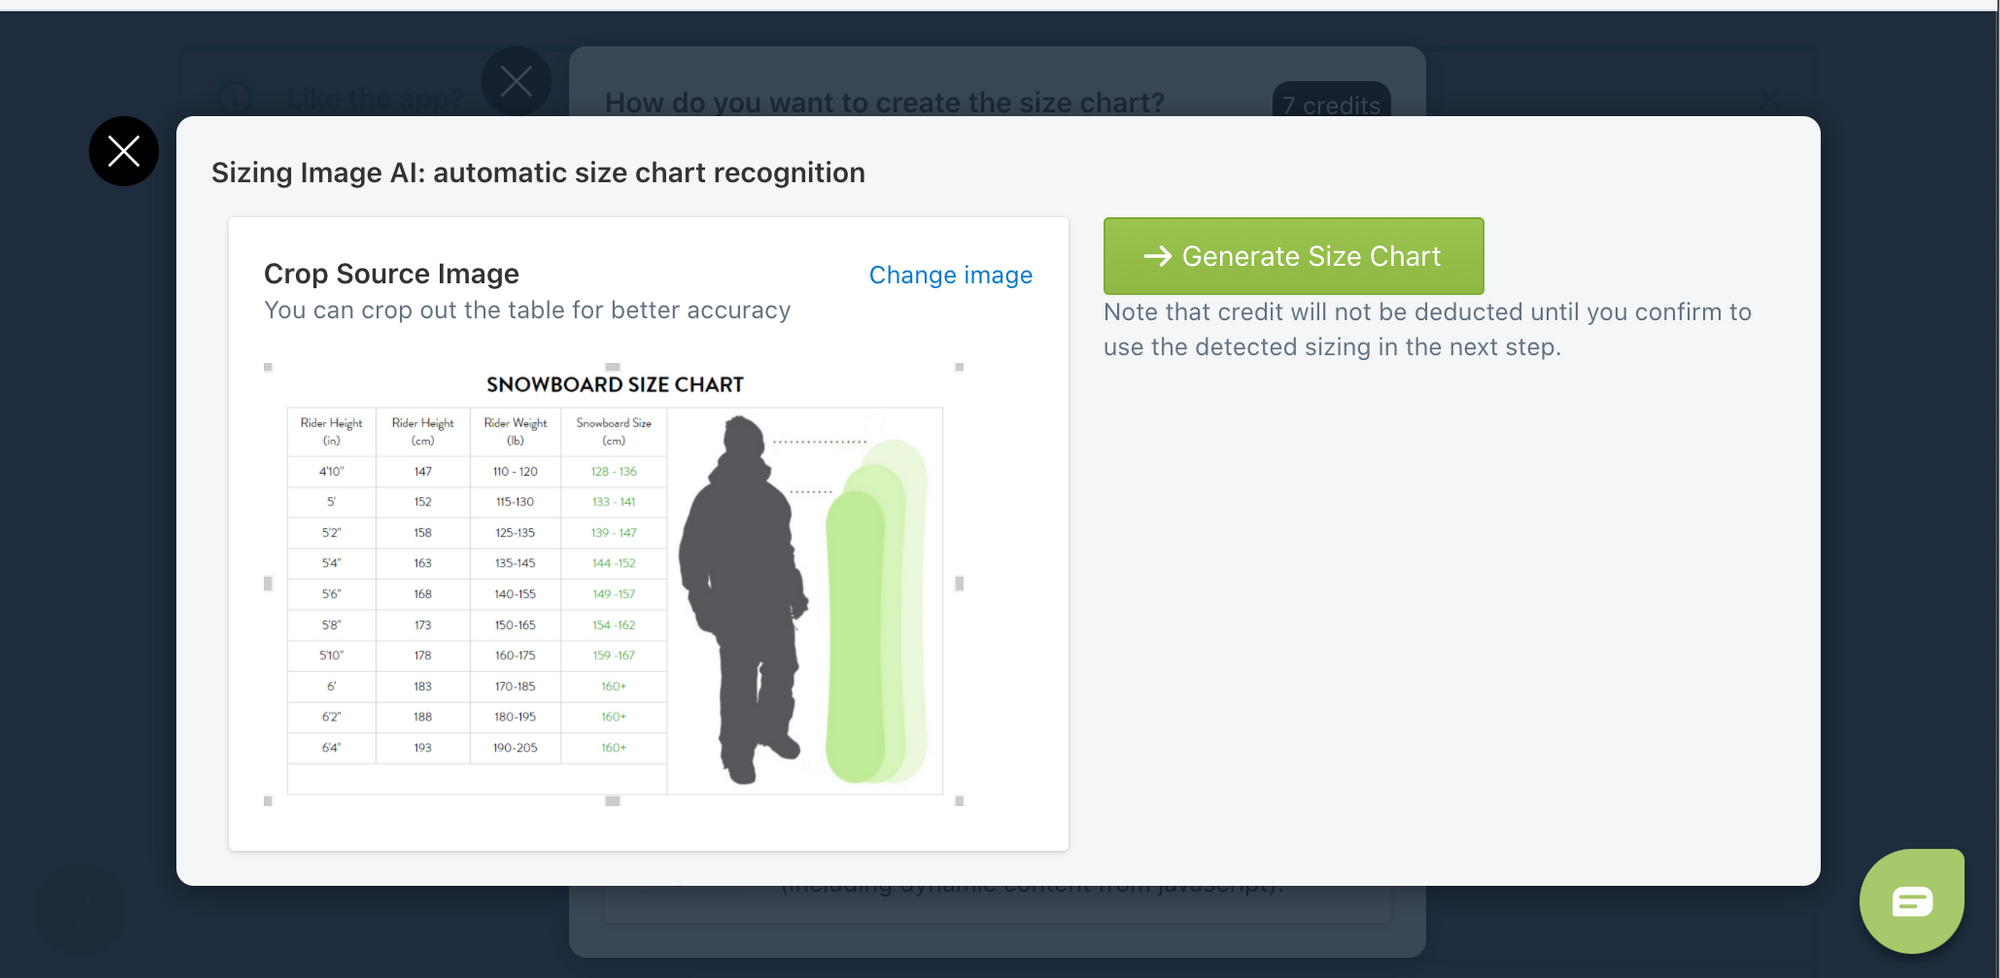 Import an image to create size charts in seconds with our Sizing Image AI